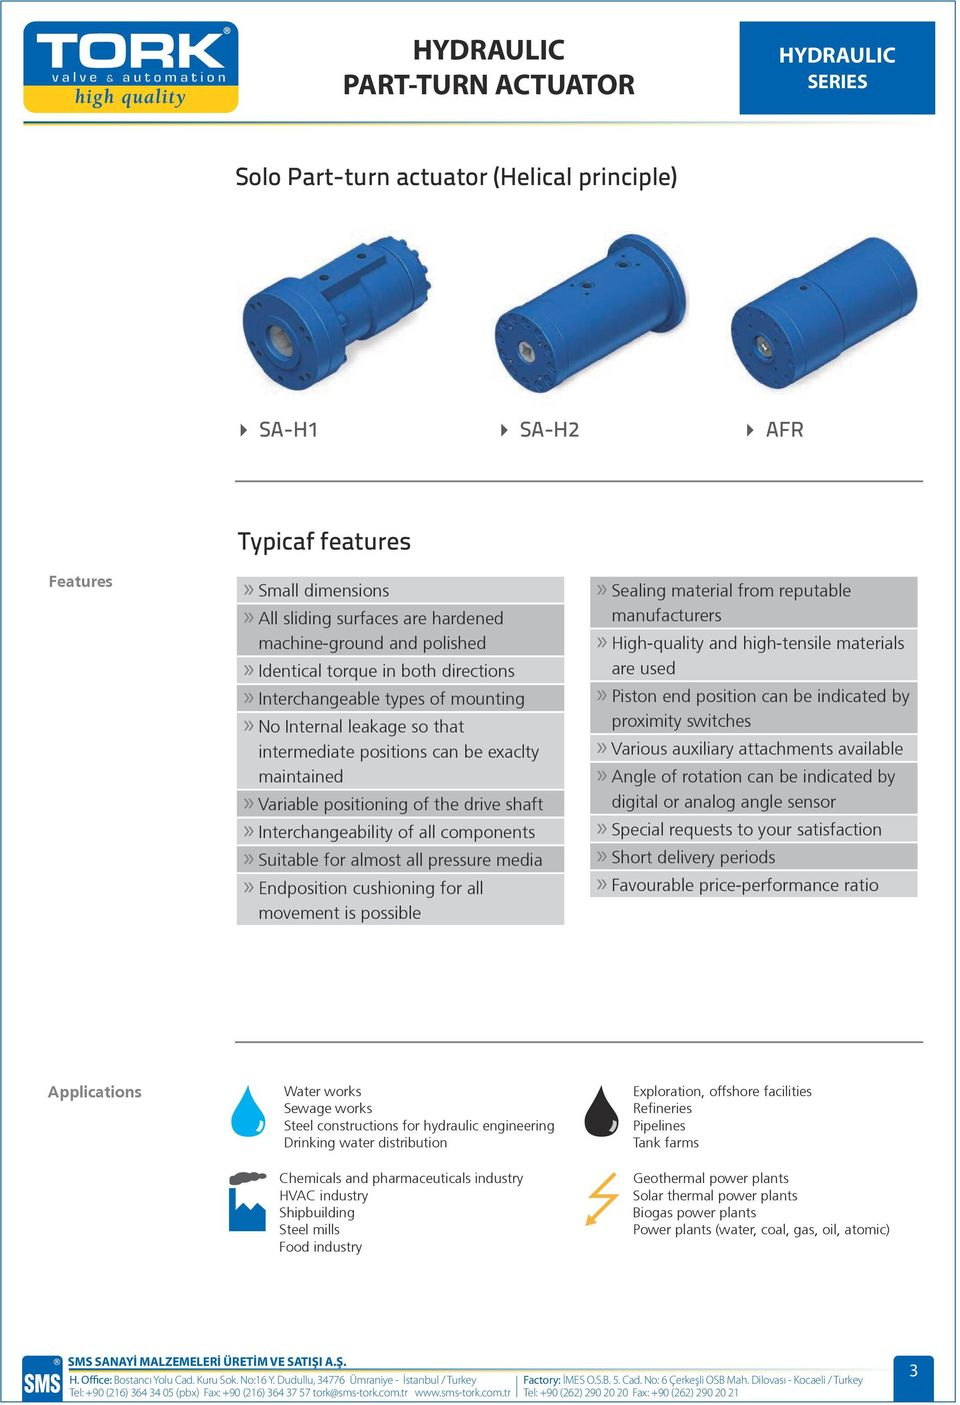 HYDRAULIC PART-TURN ACTUATOR HYDRAULIC SERIES  Fittings